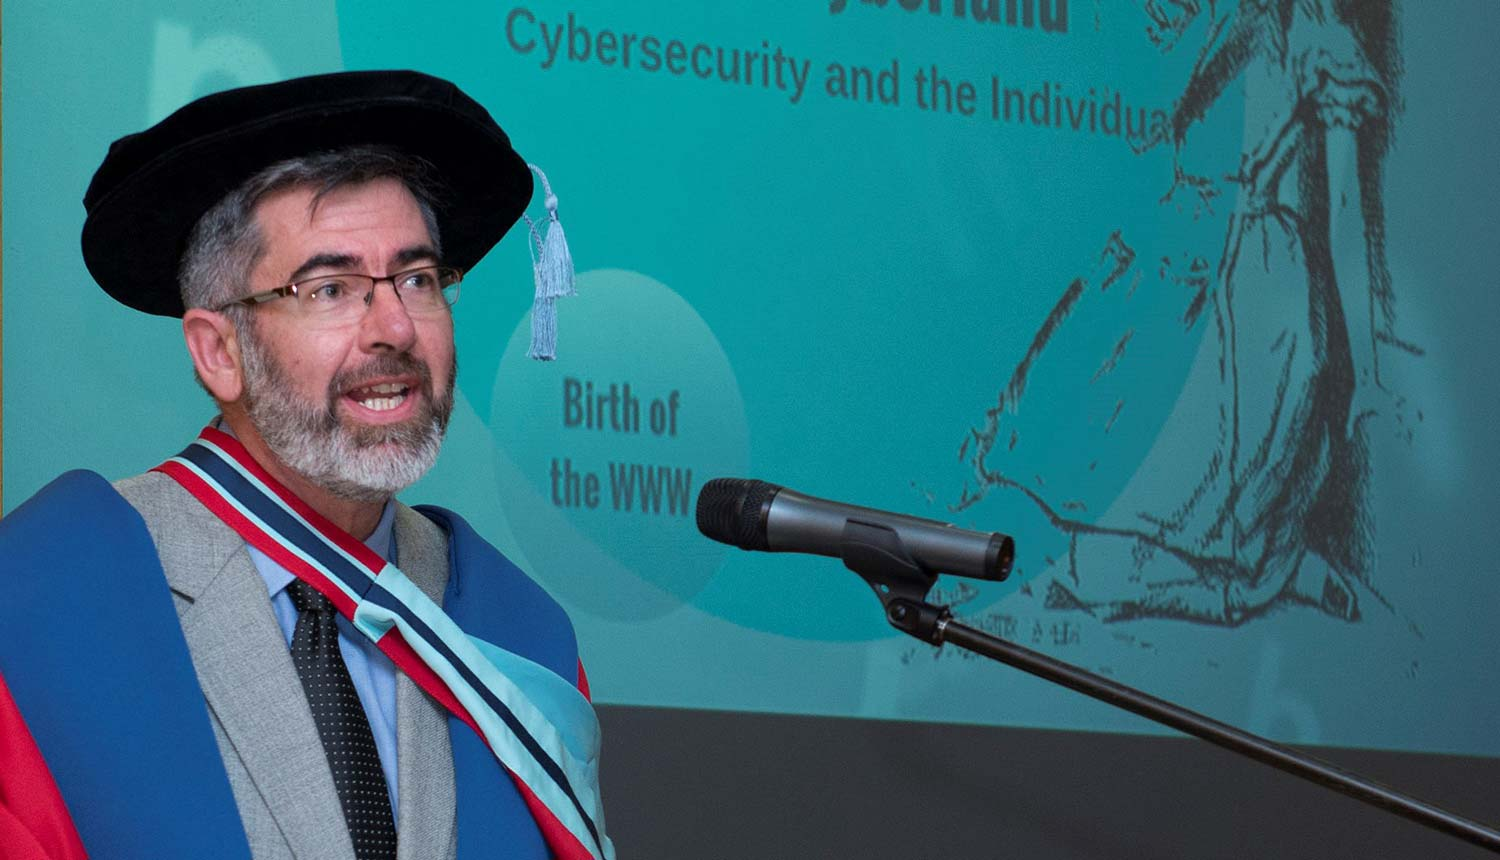 Cyber Security professor Johan Van Niekerk